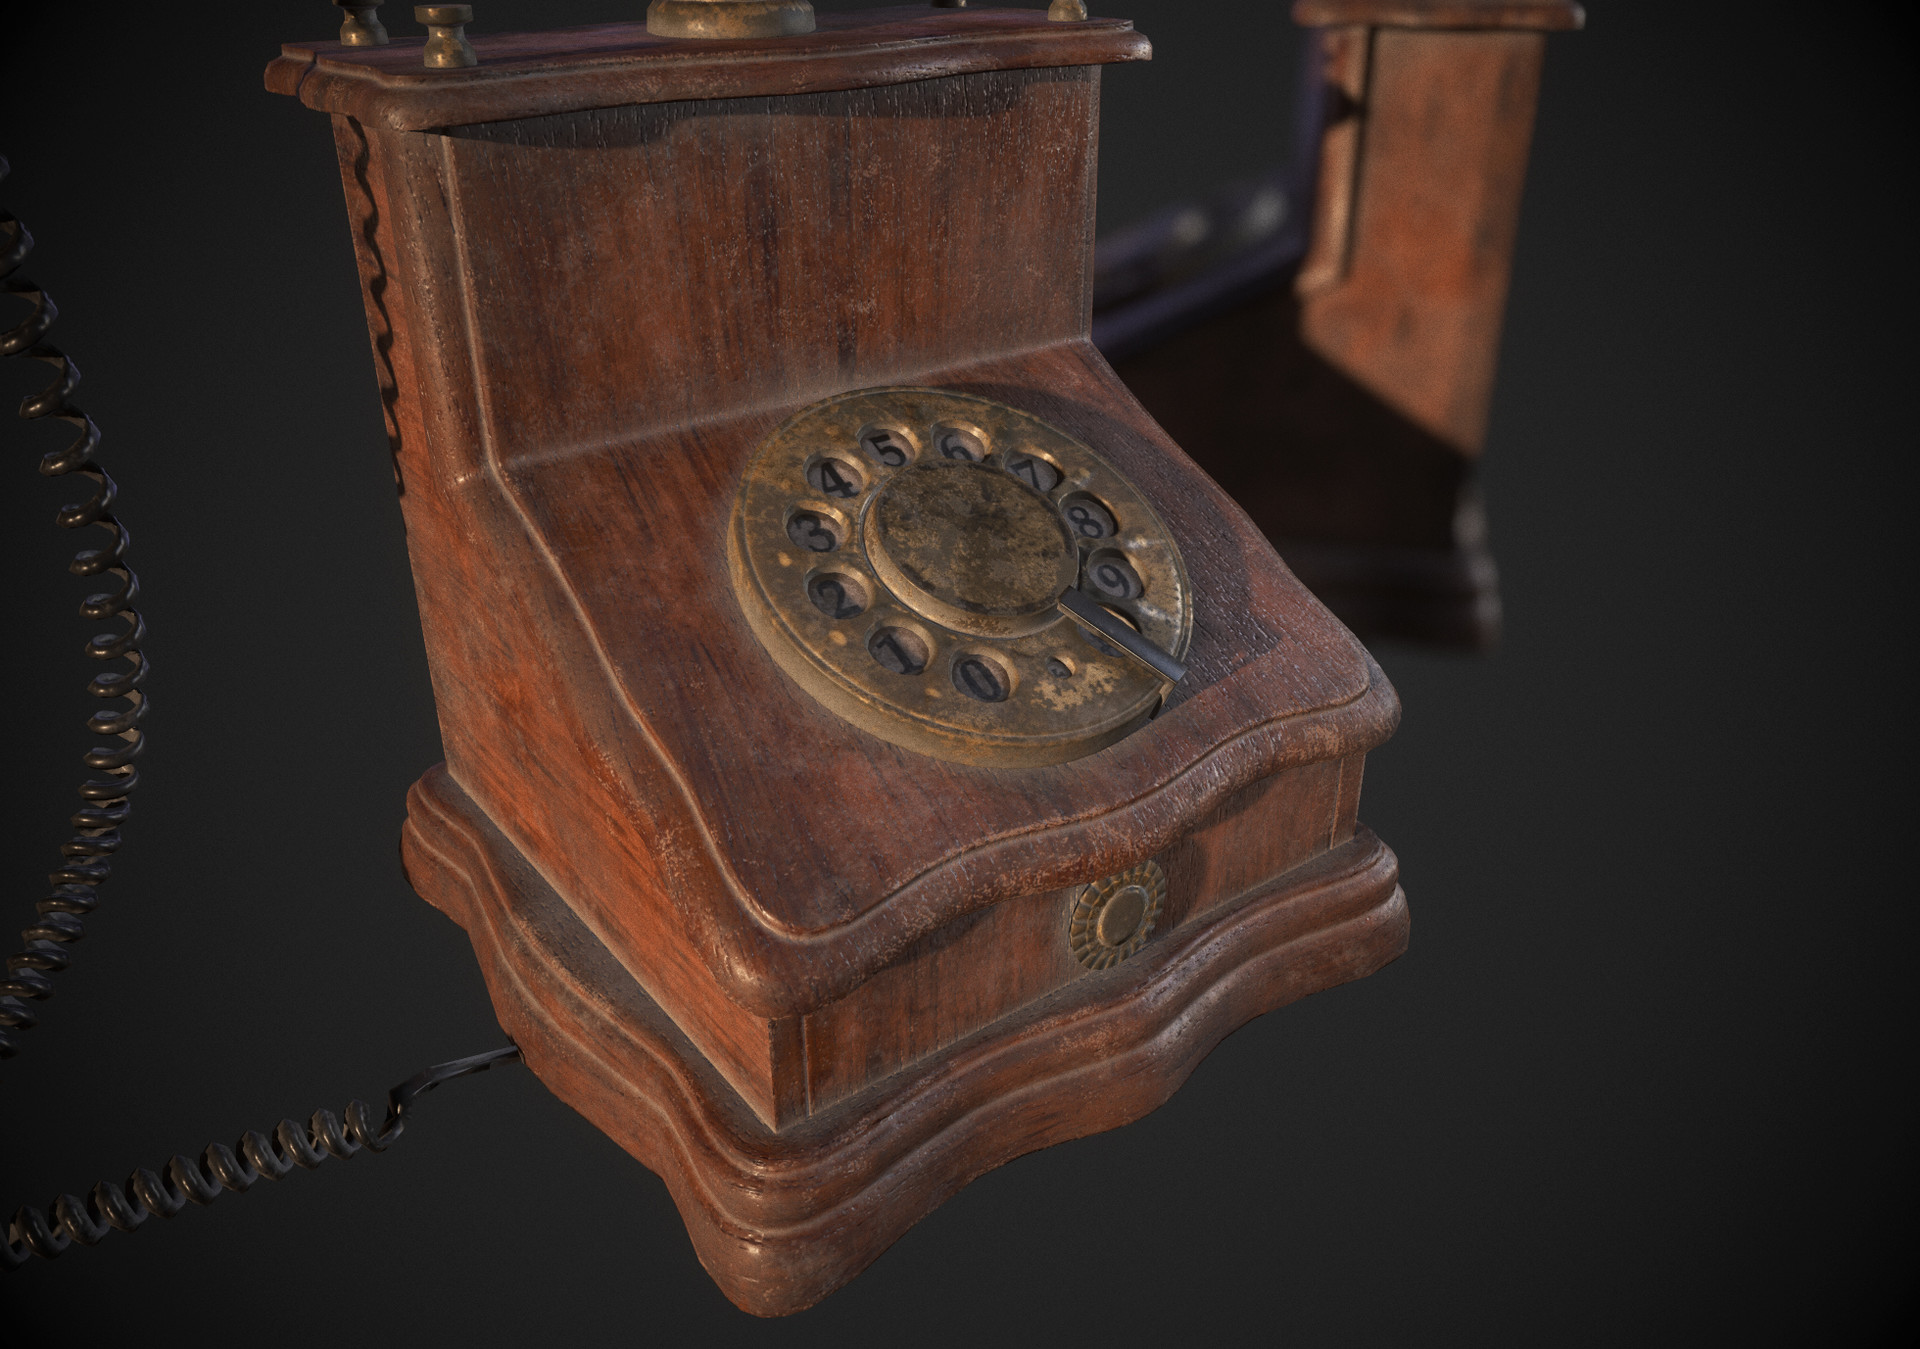 Hugo beyer antiquephone render2